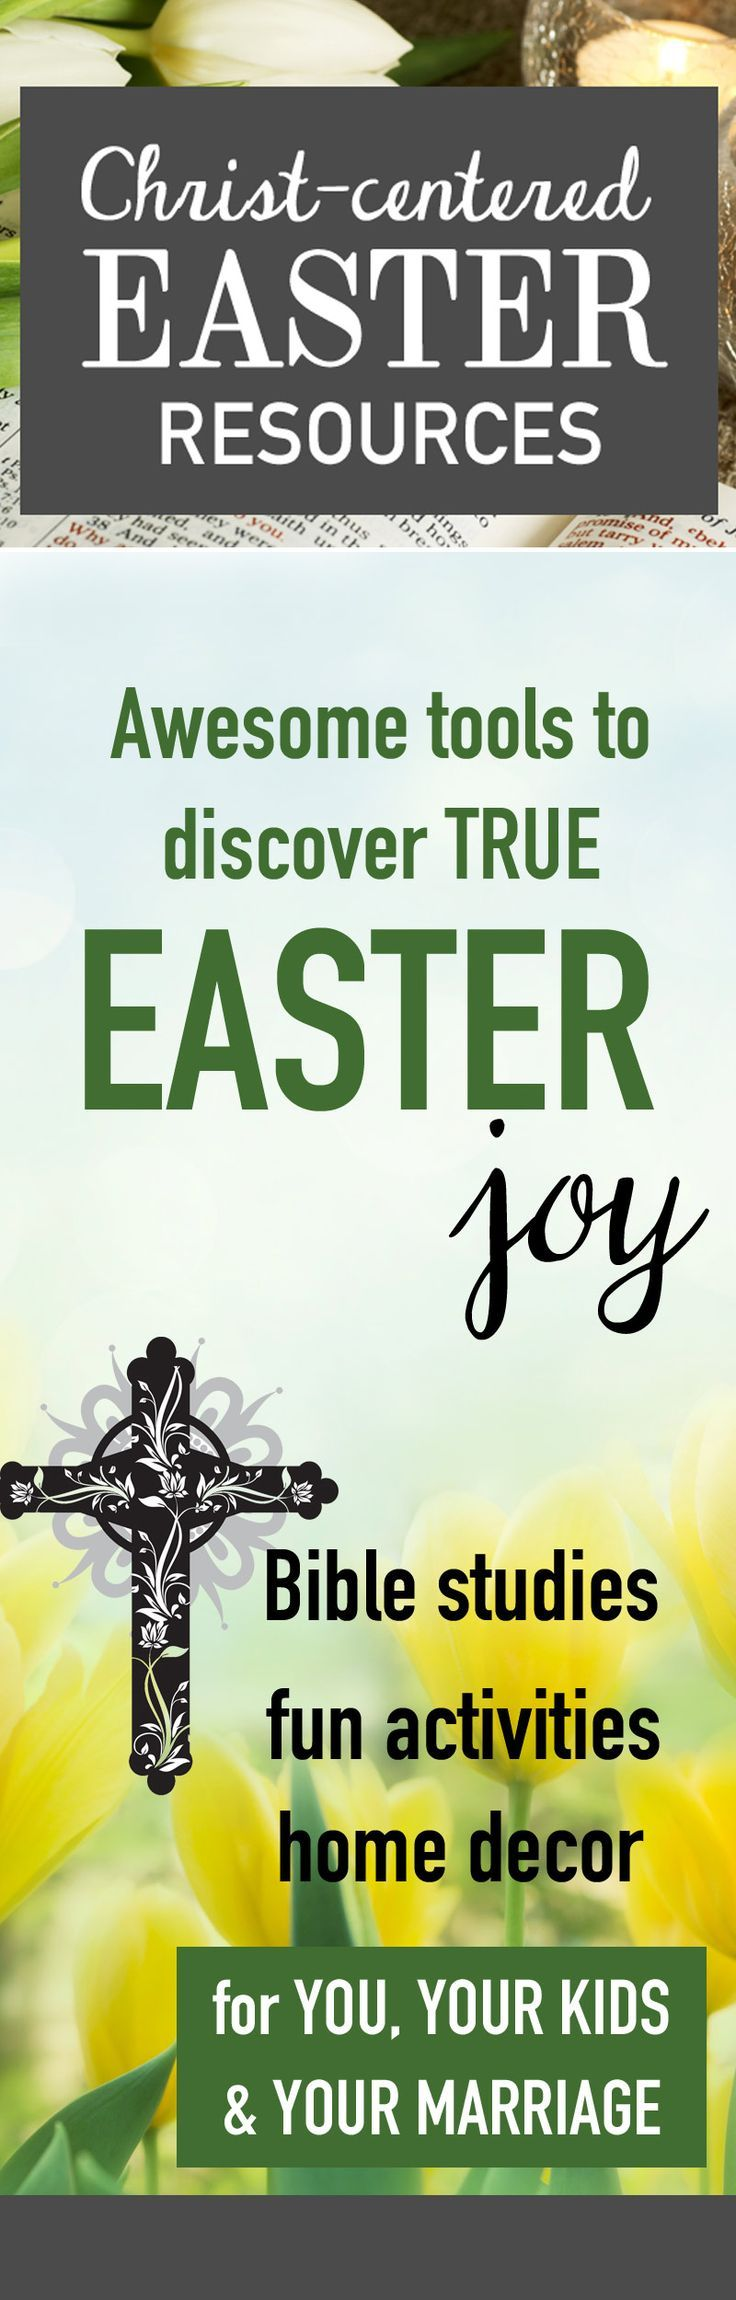 Christian easter decorations for the home - No Easter Bunny Here I Love That These Easter Bible Studies Kids Activities And